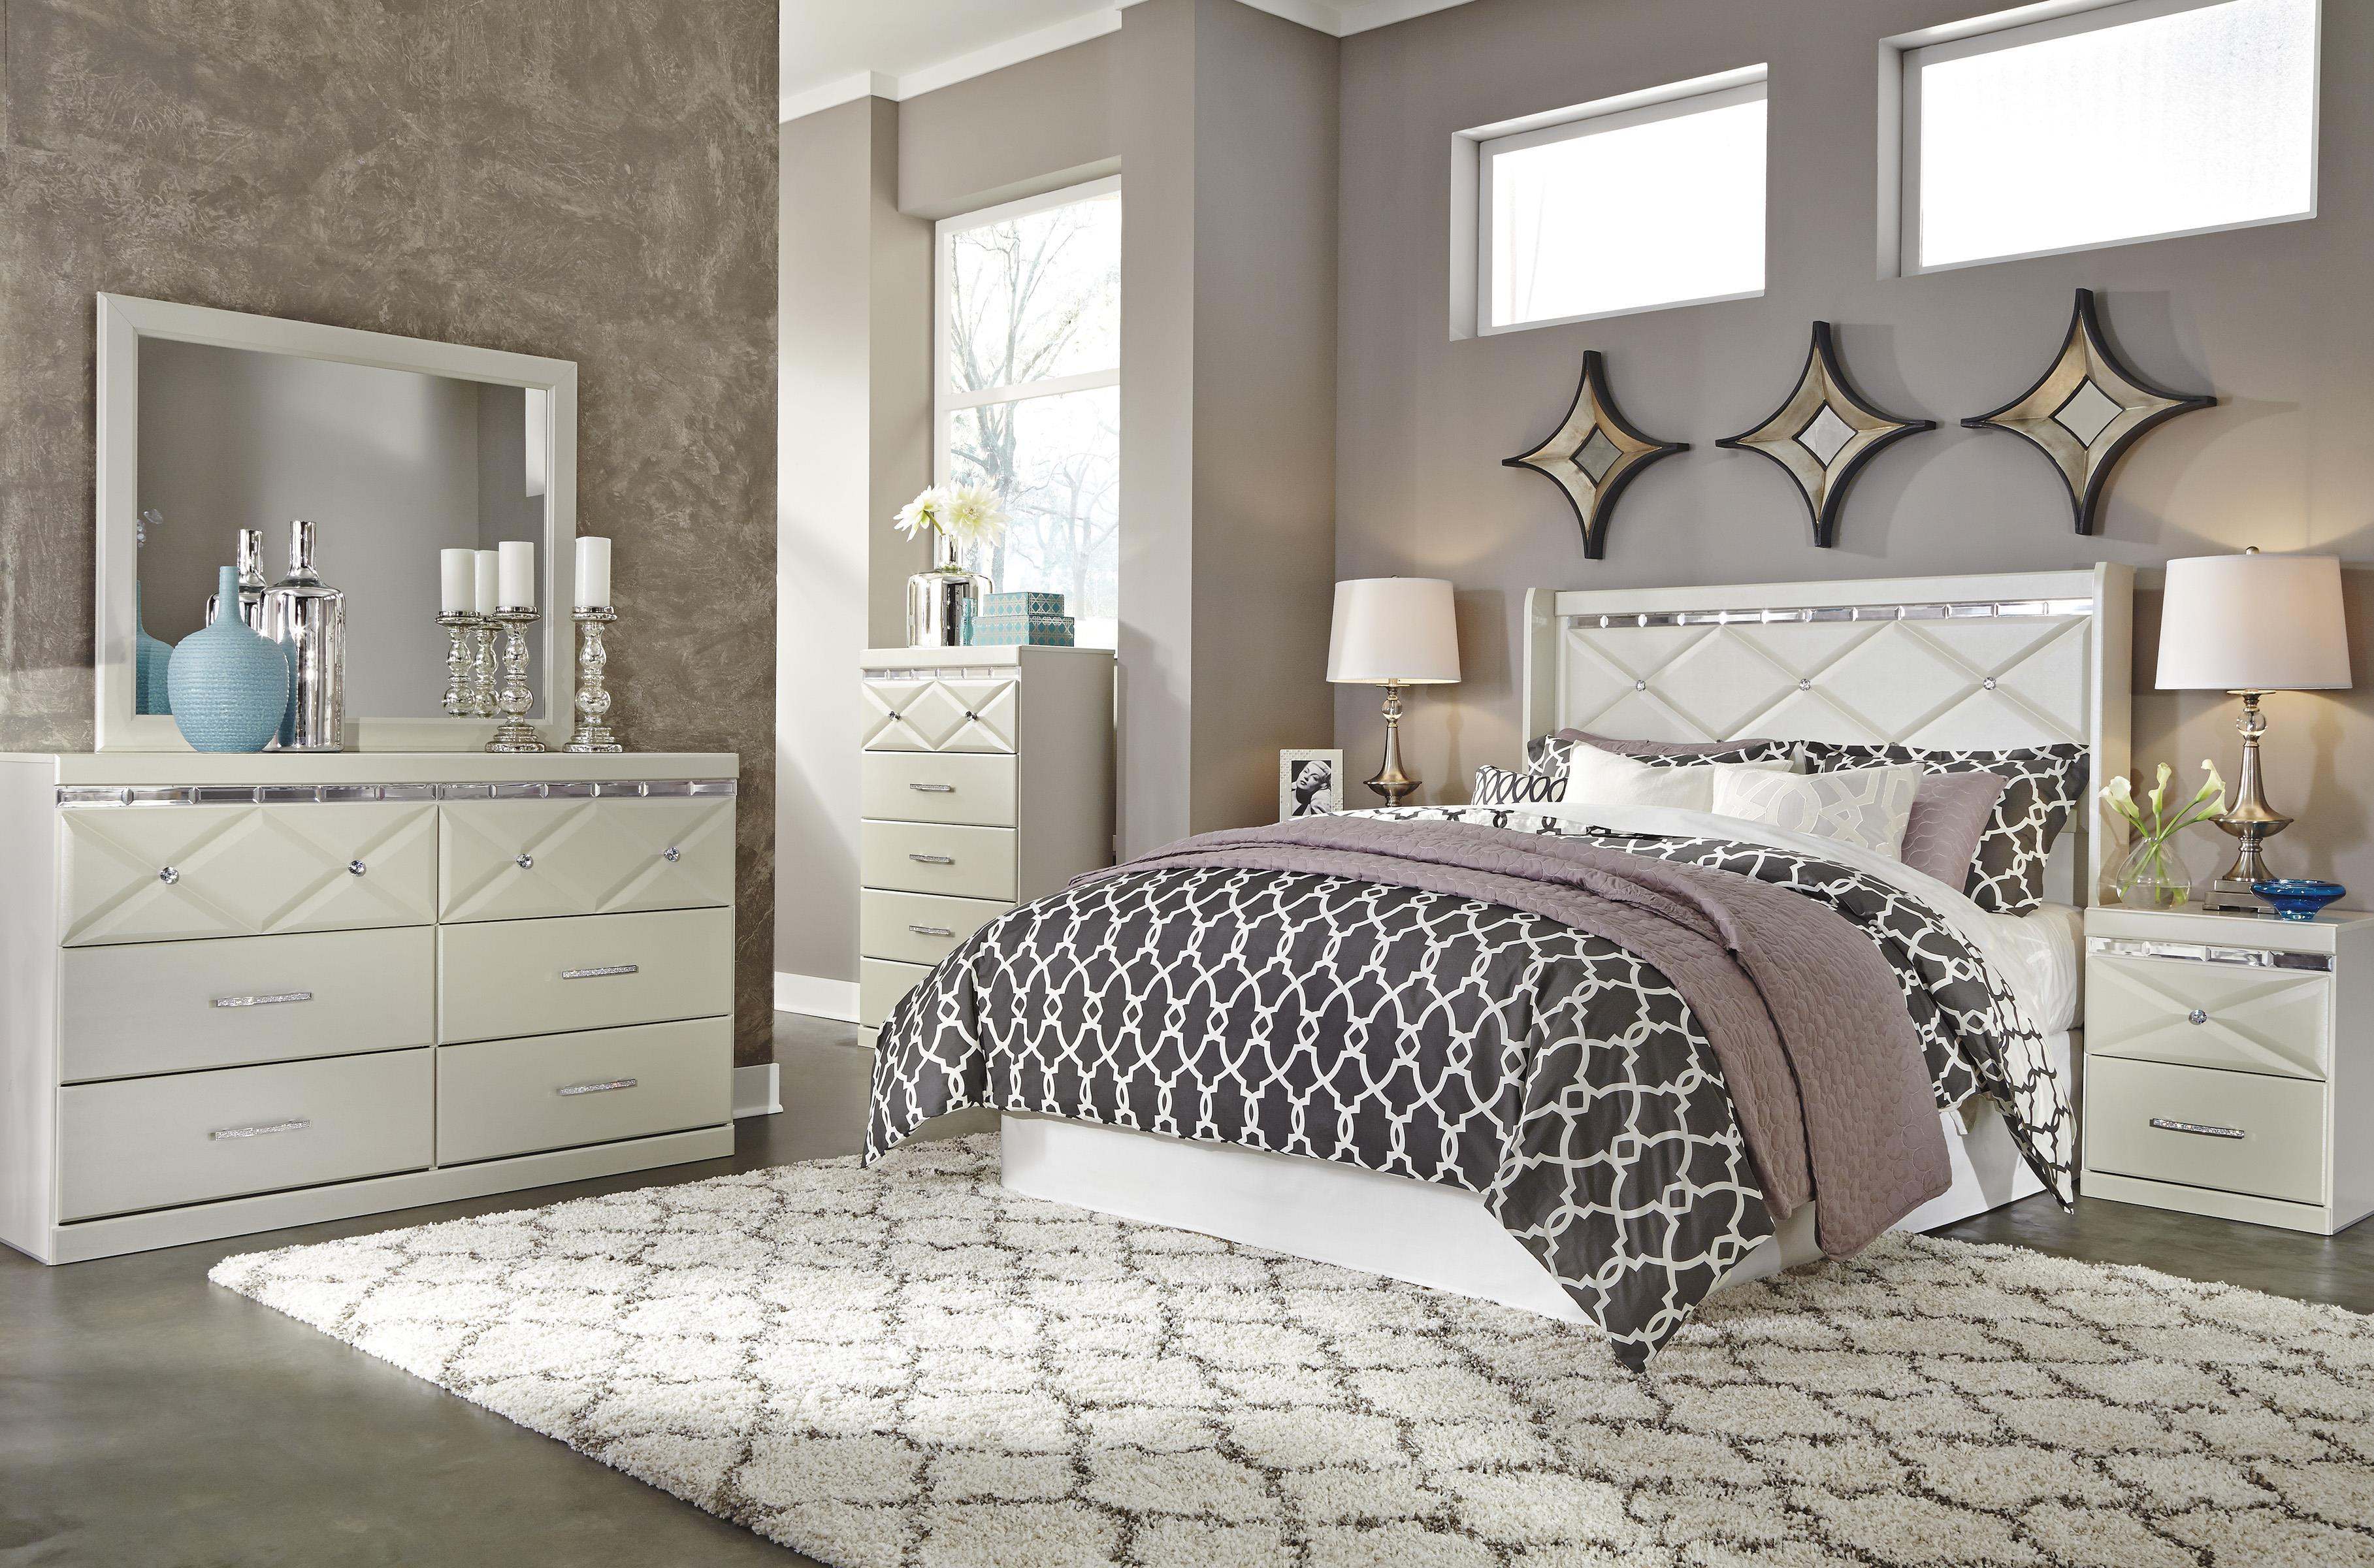 Signature design by ashley dreamur queen bedroom group del sol furniture bedroom groups Ashley home furniture bedroom sets